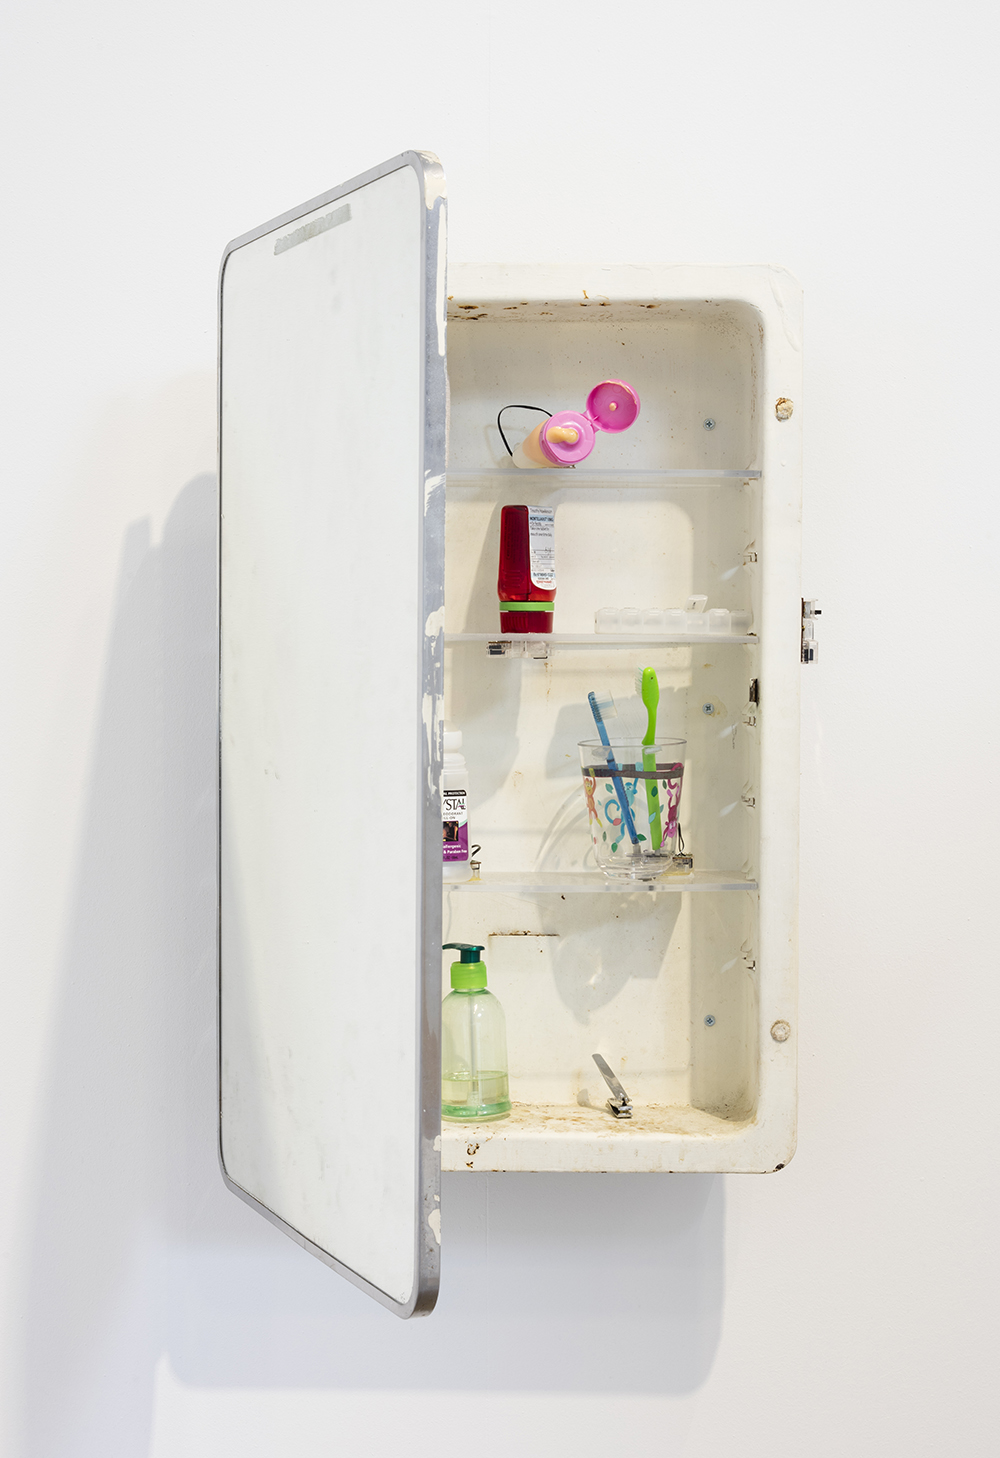 Tim Hawkinson. <em>World Clock</em>,  2012. Medicine cabinet, ace bandage, lotion bottle, prescription medicine bottle, dental floss, deodorant, toothbrushes, plastic cup, pump soap bottle, nail clipper and clock motors, 25 1/2 x 16 x 21 inches (64.8 x 40.6 x 53.3 cm)